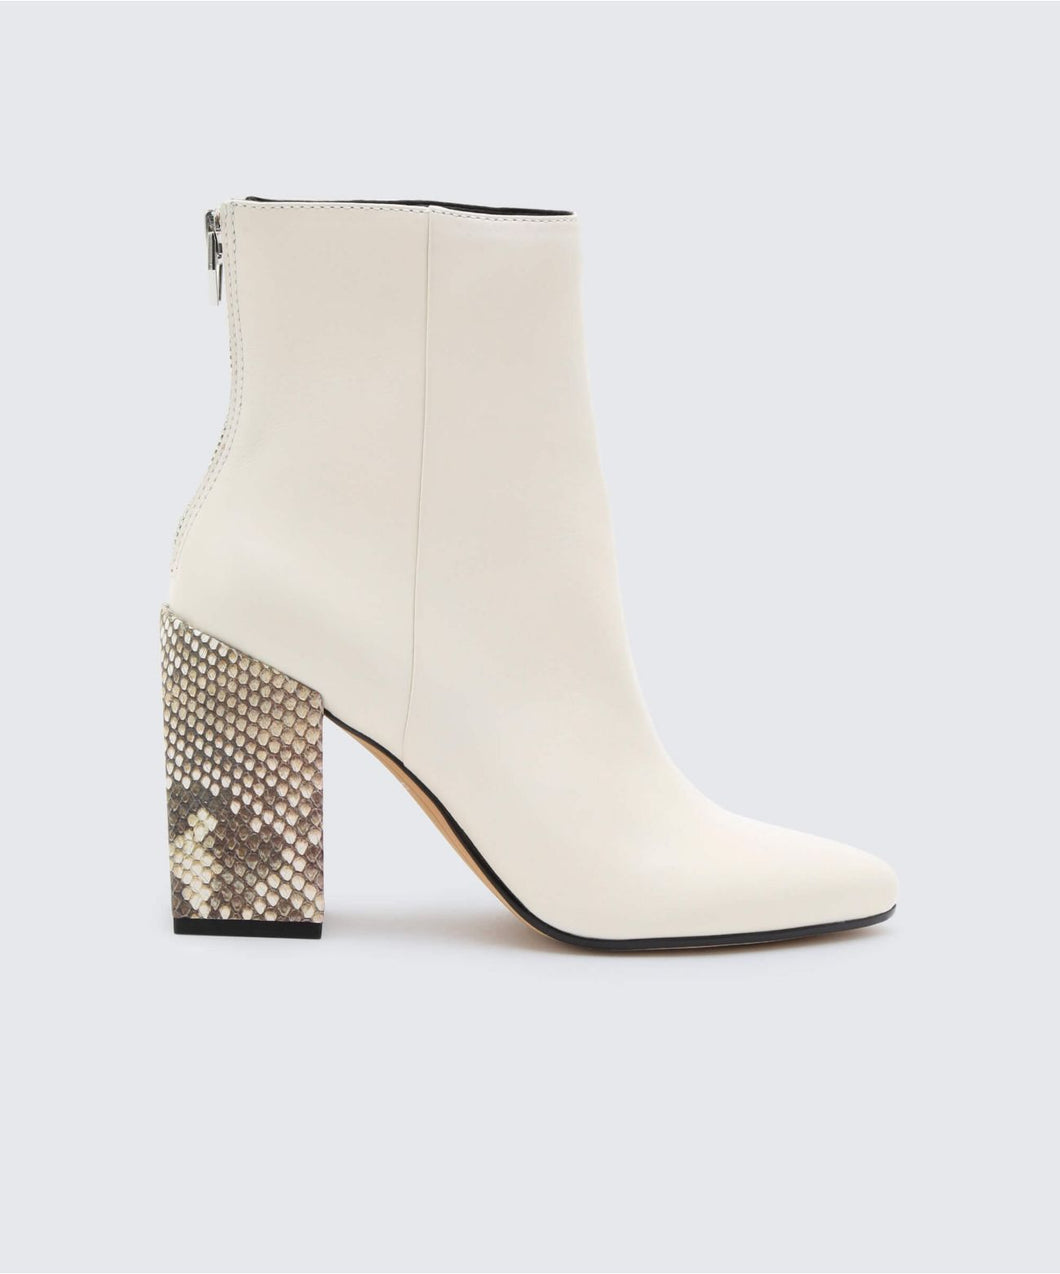 COBY BOOTIES IN OFF WHITE -   Dolce Vita